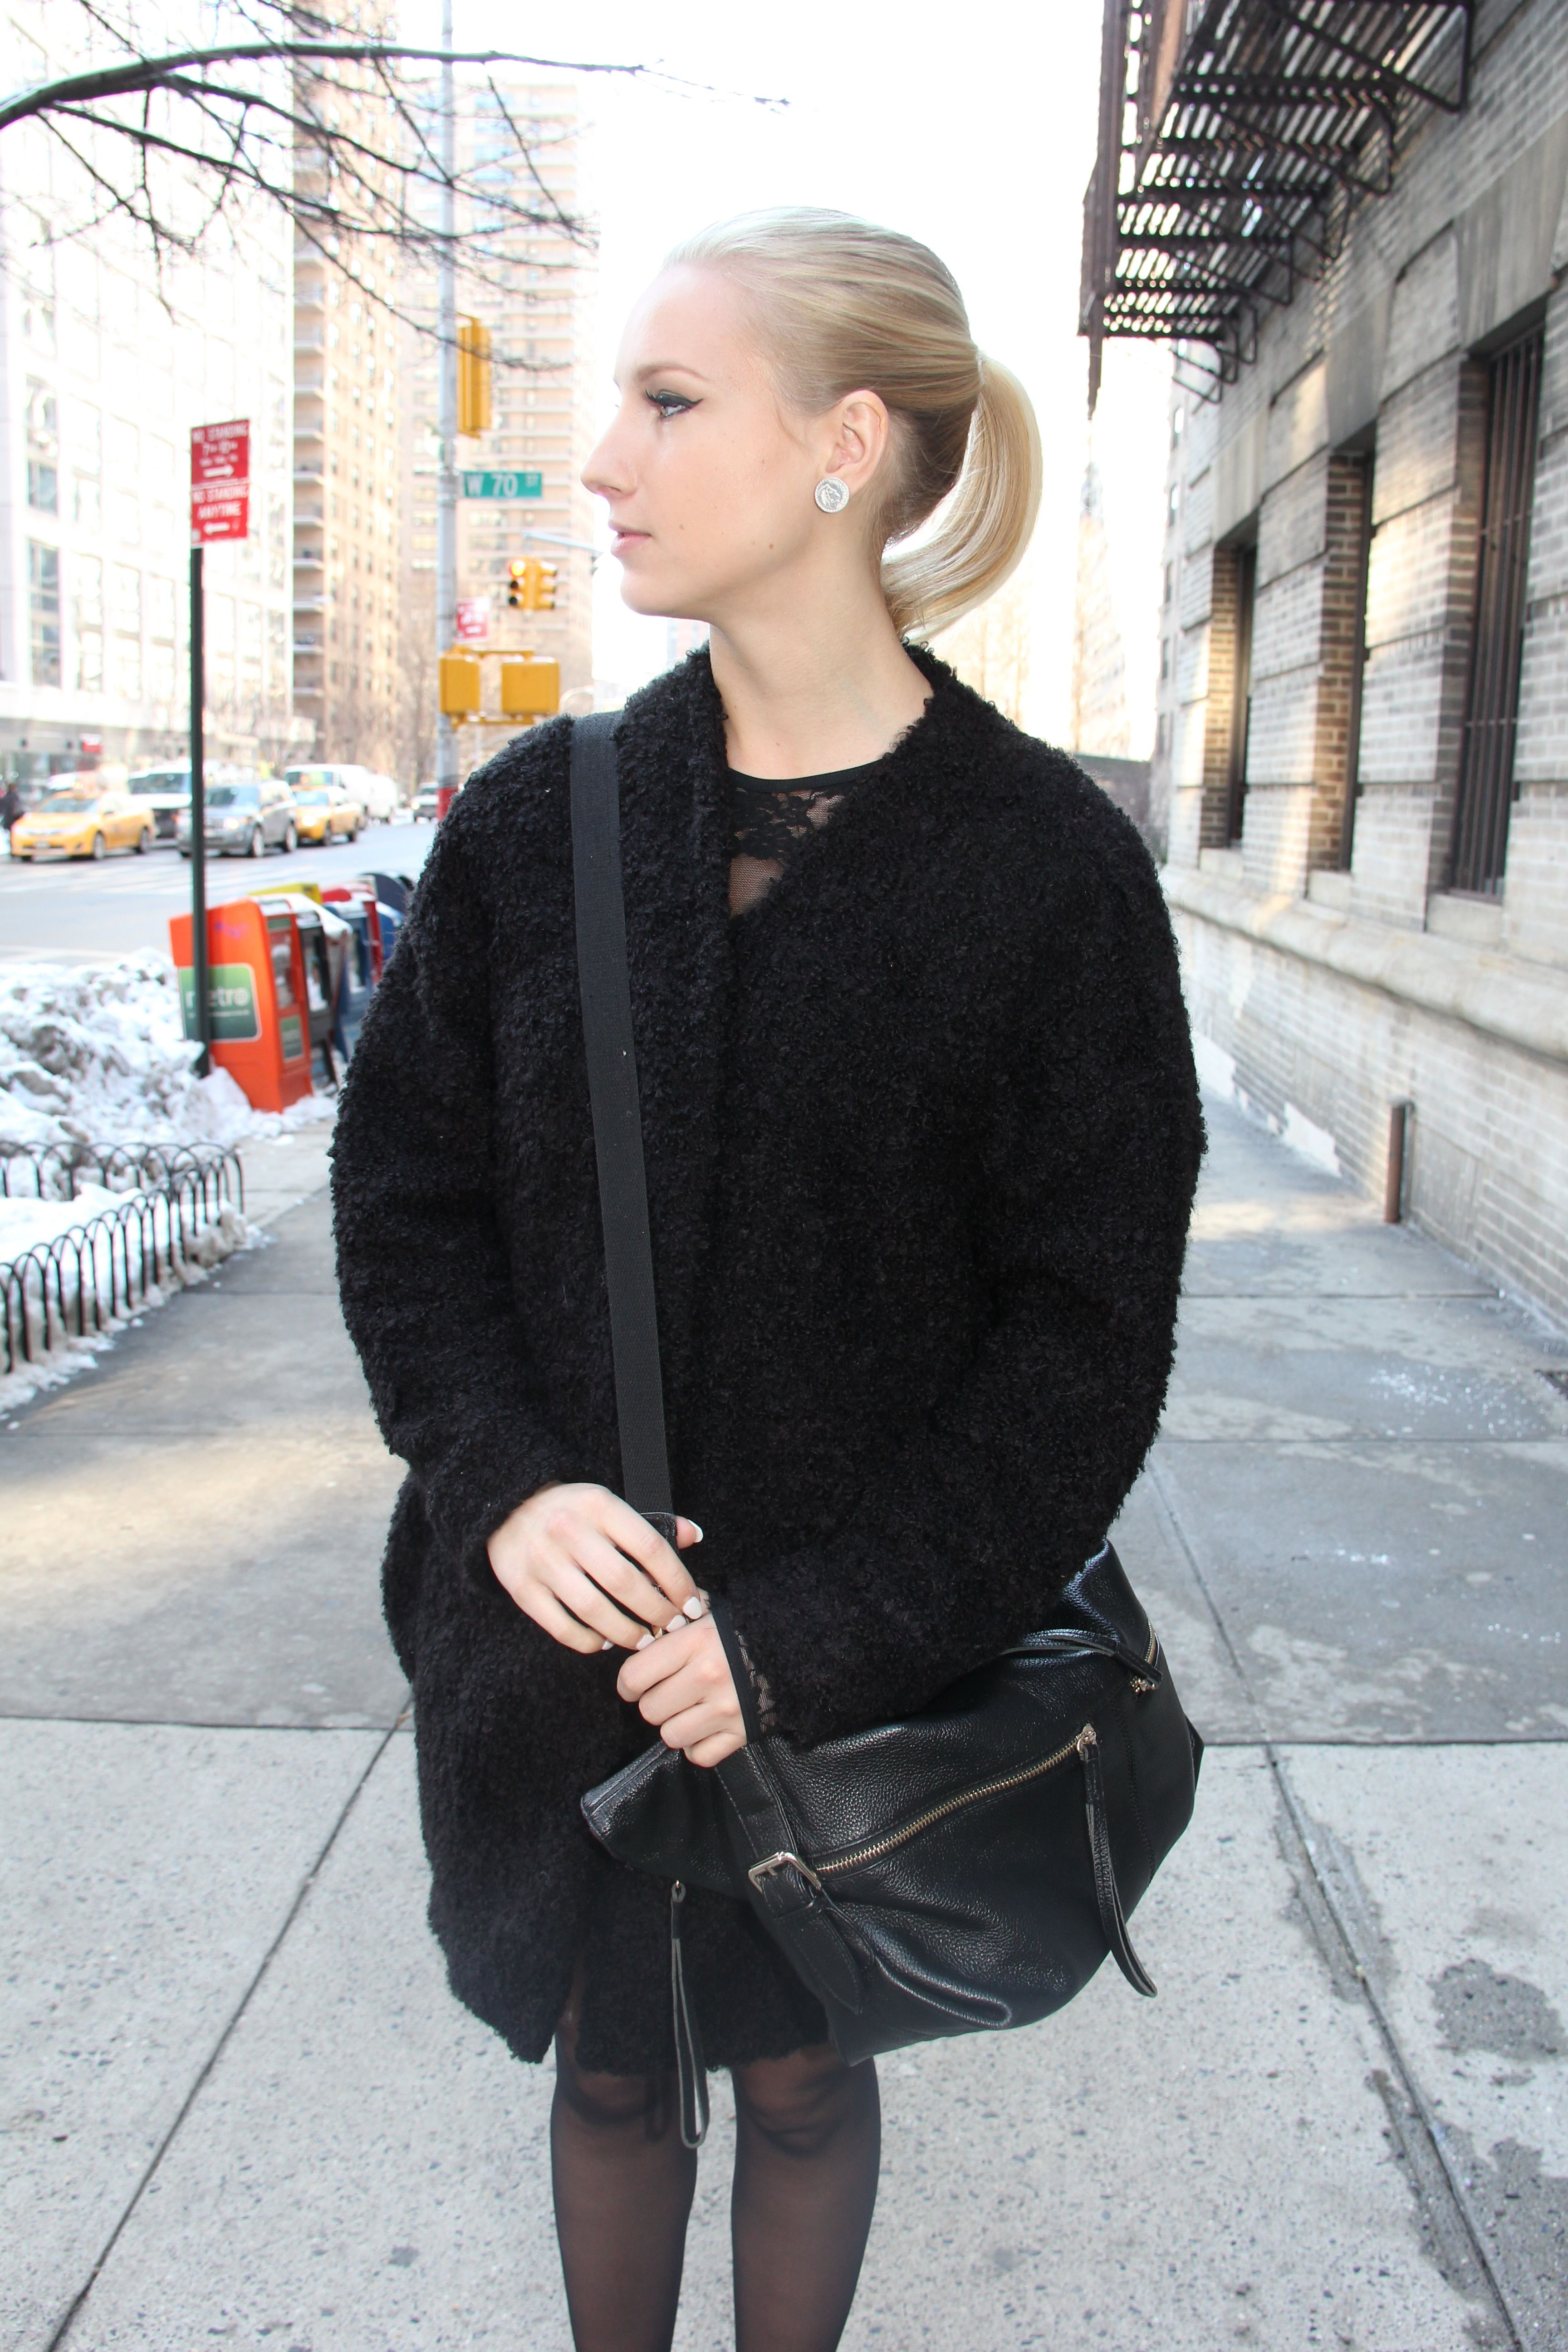 Hair styled by TONI&GUY Hoboken salon #NYFW | Blogger Danica